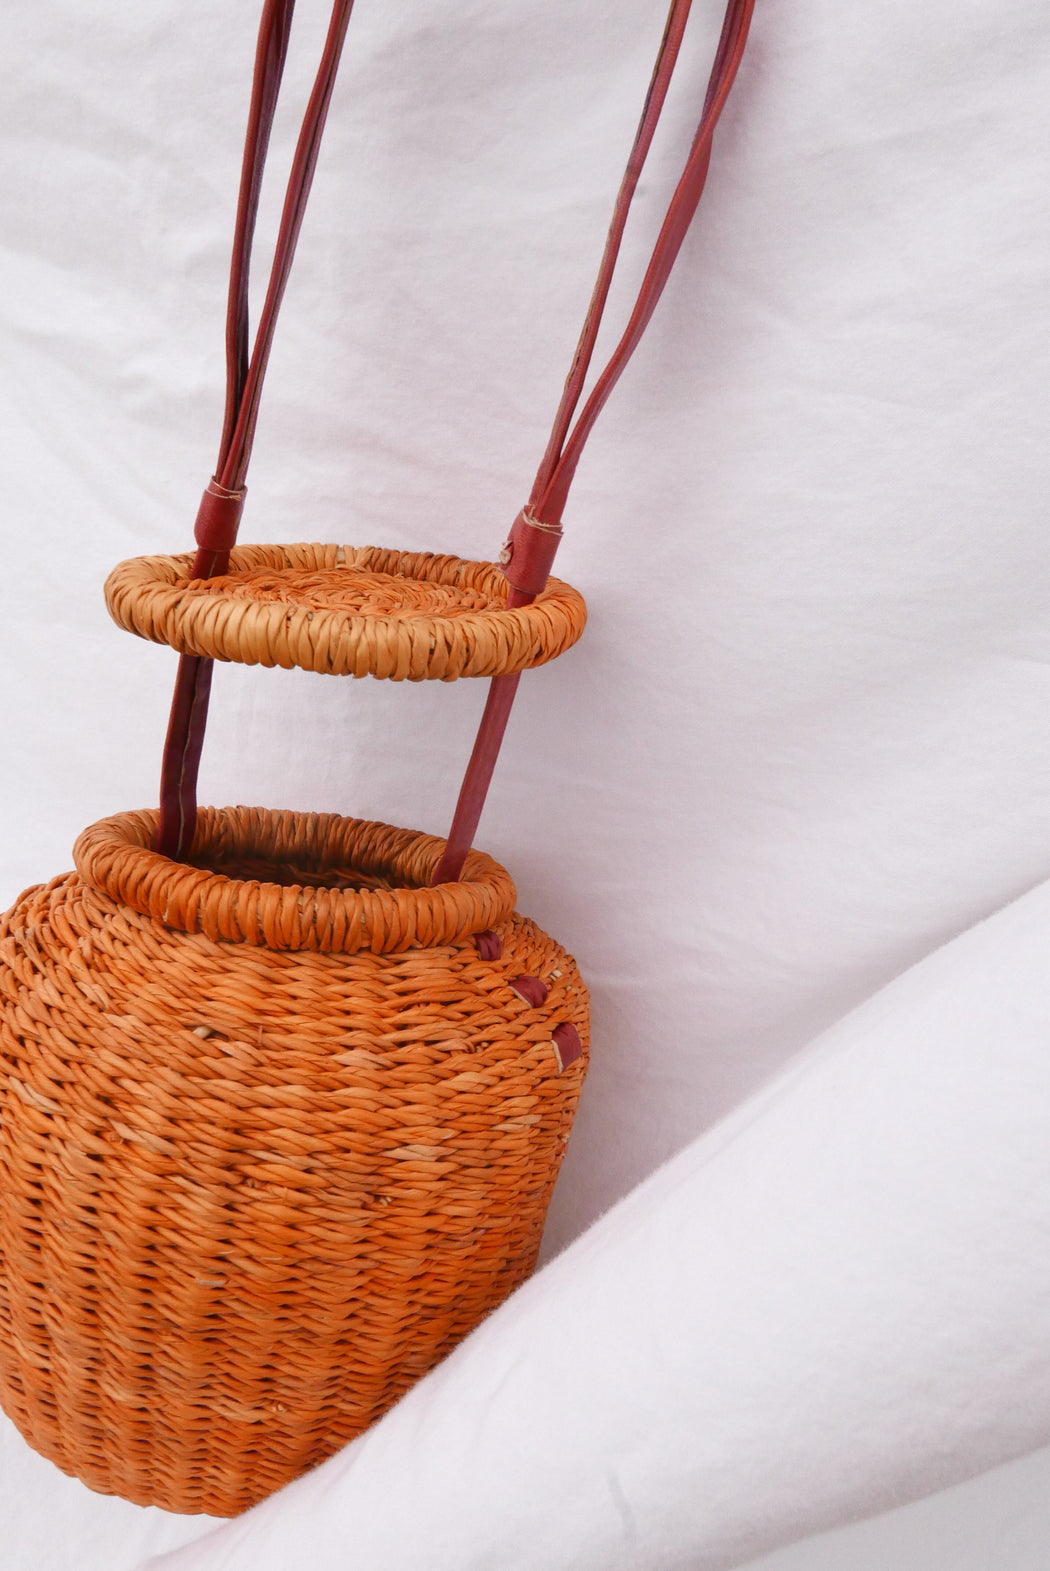 The orange Alobahe handbag is handwoven with straw called Kinkahe in Sherigu, Ghana. The shape is versatile and opens from the lid lifted vertical with an adjustable leather strap that can be worn as a crossbody or a handheld bag. This product supports a community with employment, educational opportunities for the children and improve the work environment.